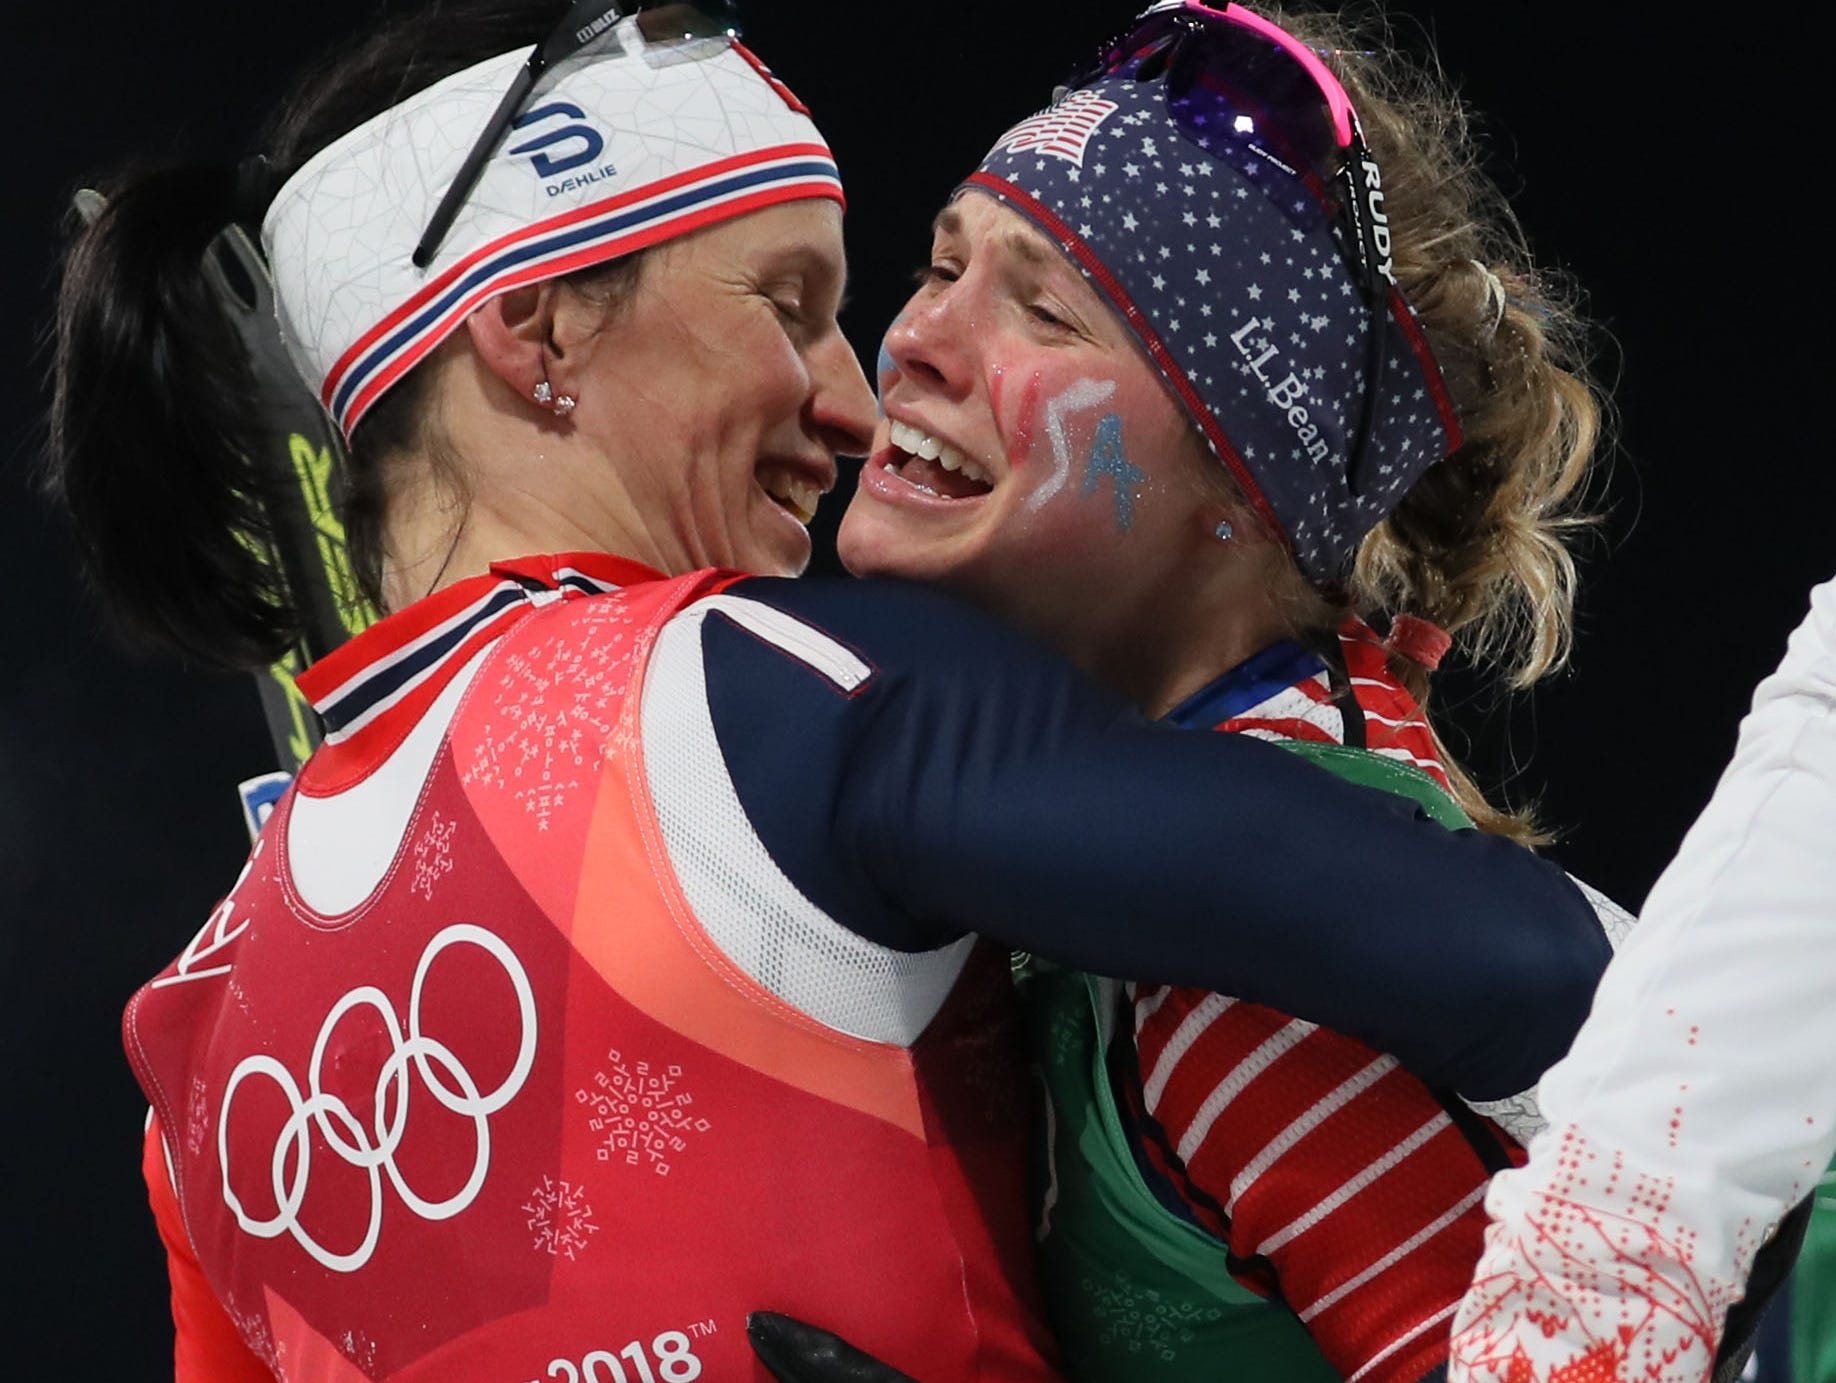 Feb. 21: Marit Bjoergen (NOR) congratulates Jessica Diggins (USA) after she and Kikkan Randall (USA) won the gold medal in the women's cross-country skiing team sprint freestyle during the Pyeongchang Winter Games.